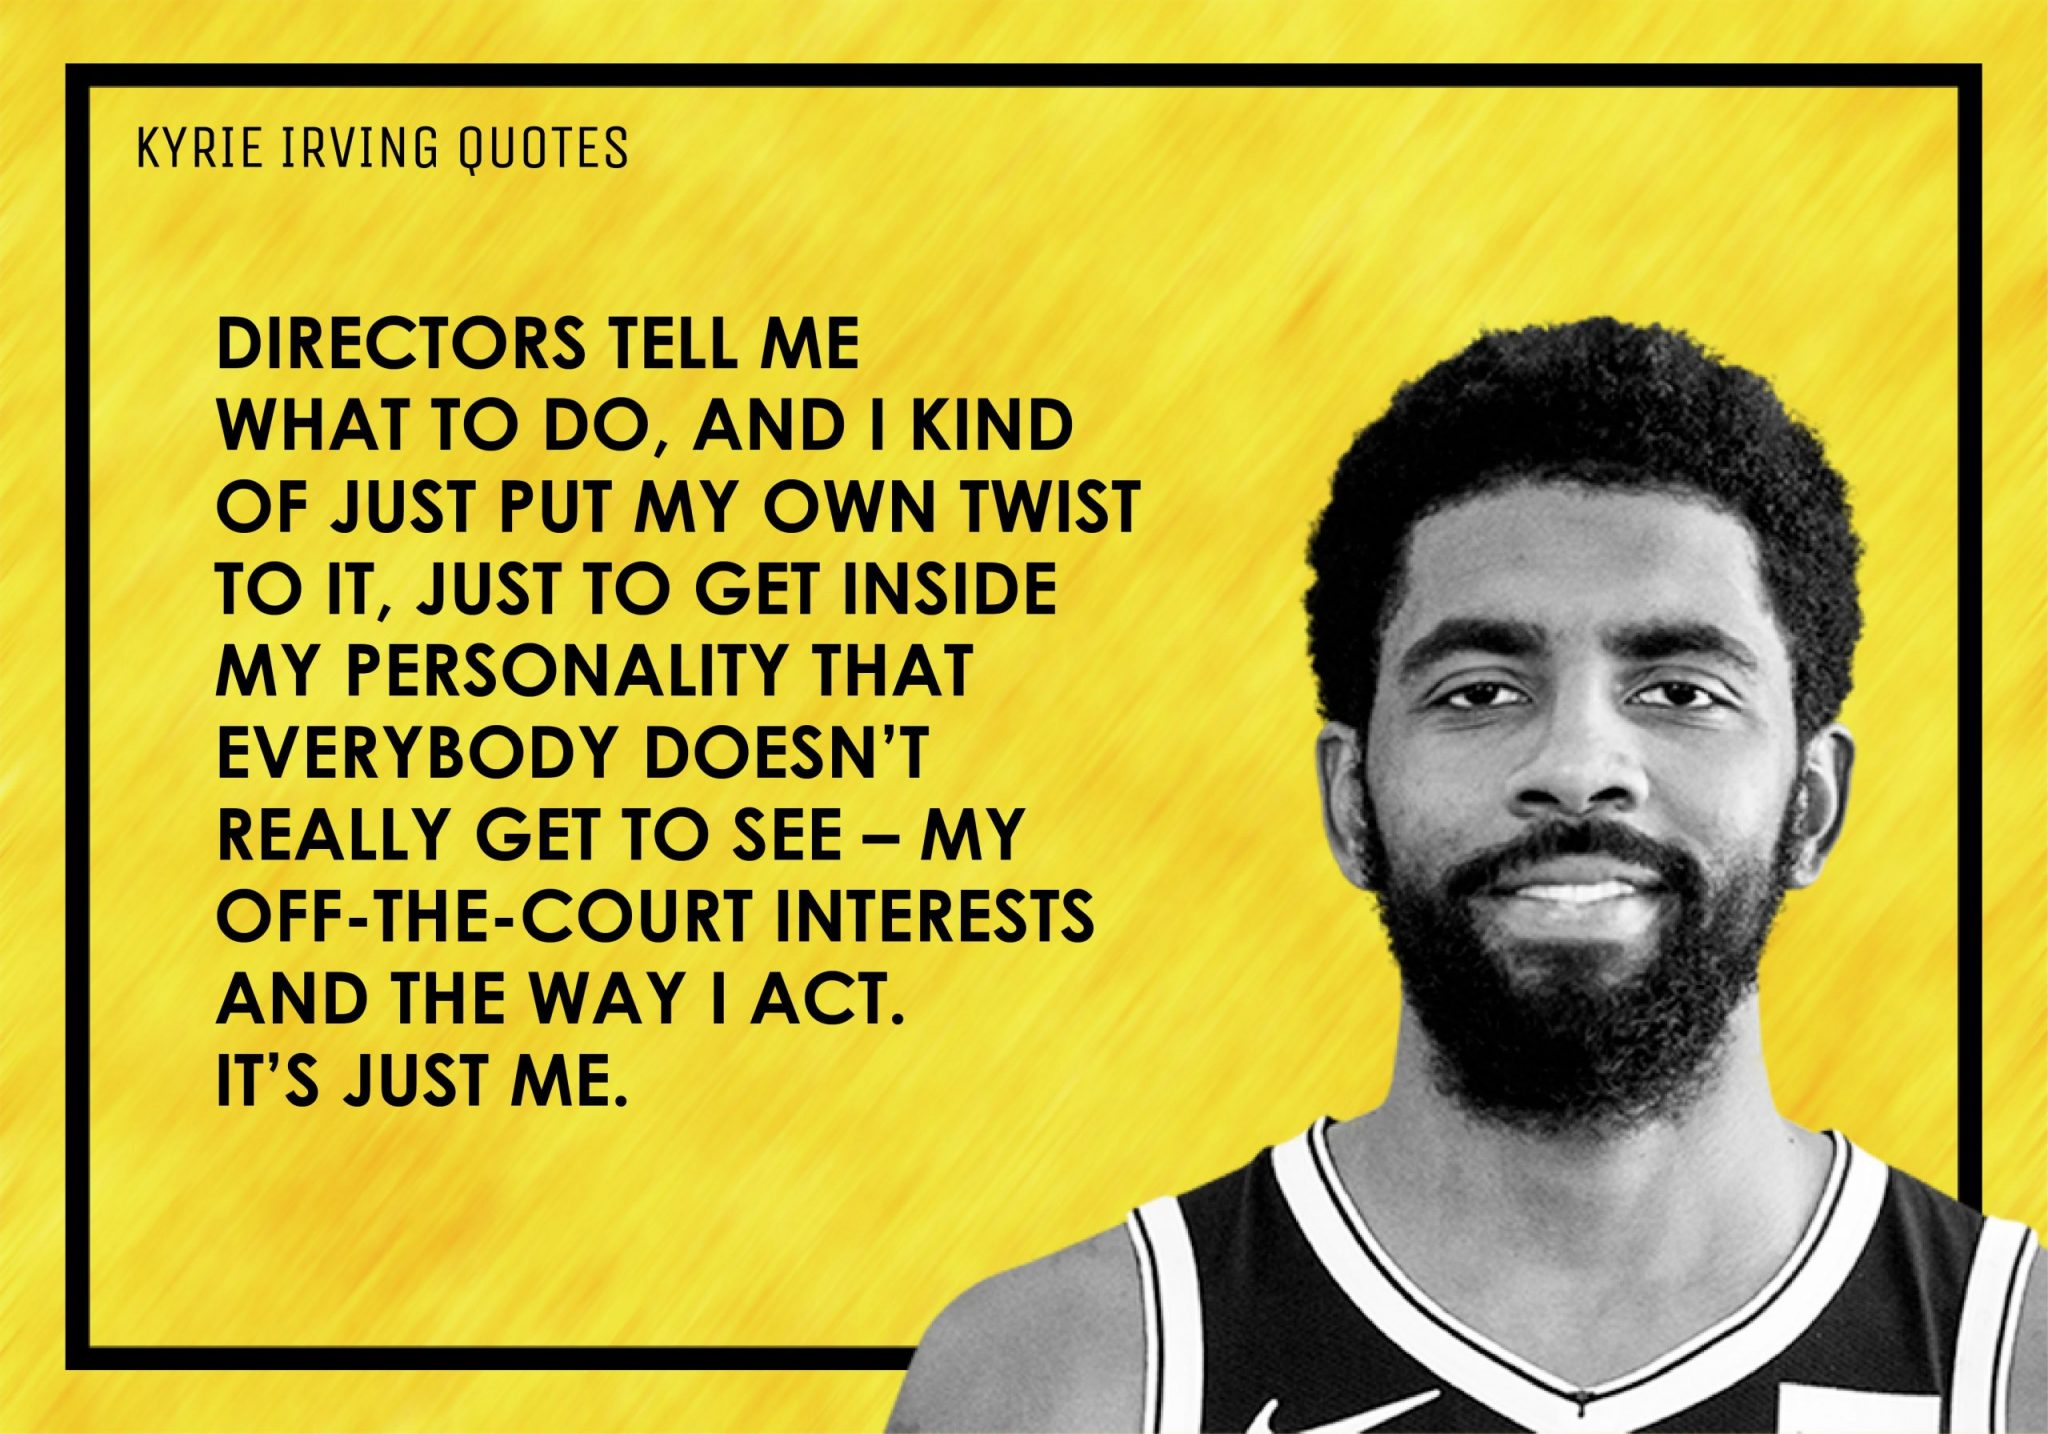 Kyrie Irving Quotes (2)